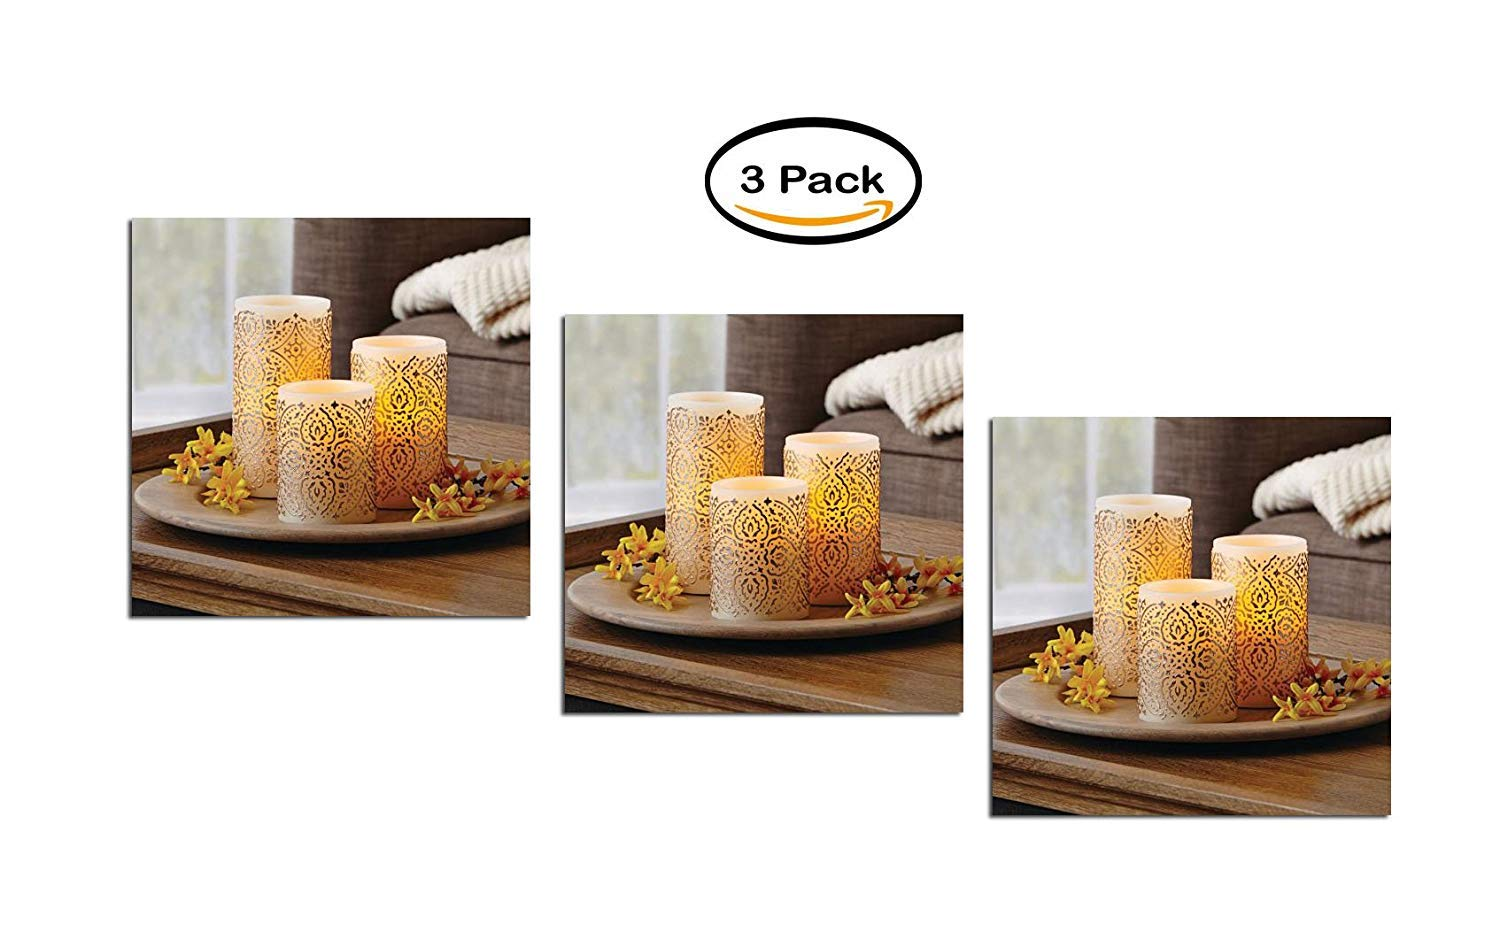 PACK OF 3 - Better Homes & Gardens LED Flameless Pillar Set, Malaysian Motif by Better Homes & Gardens